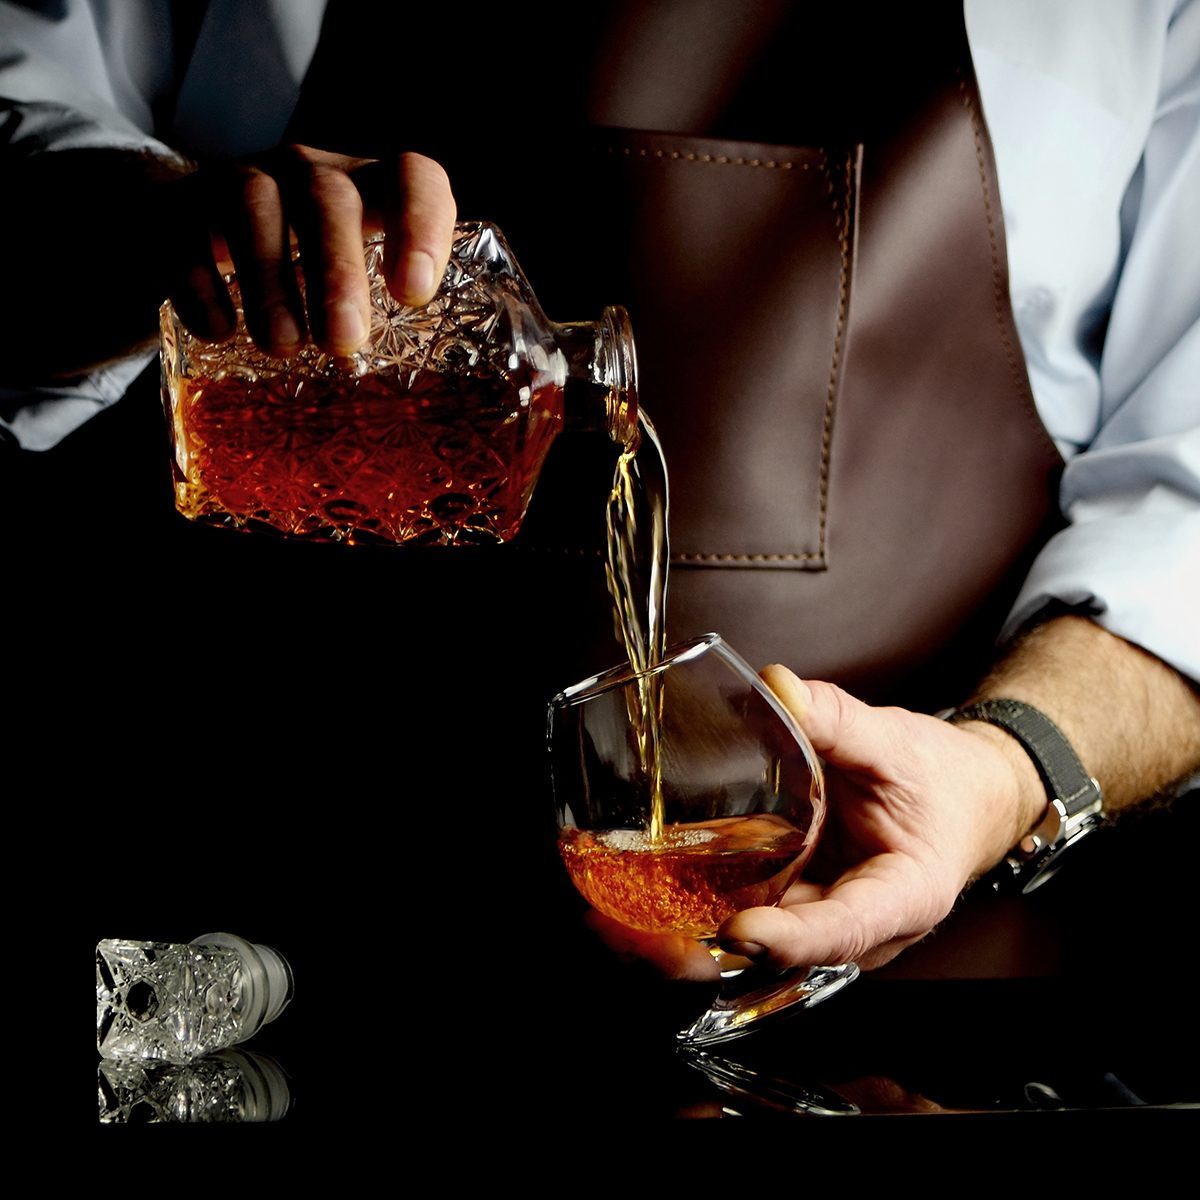 the man pours some brandy into a glass behind the bar